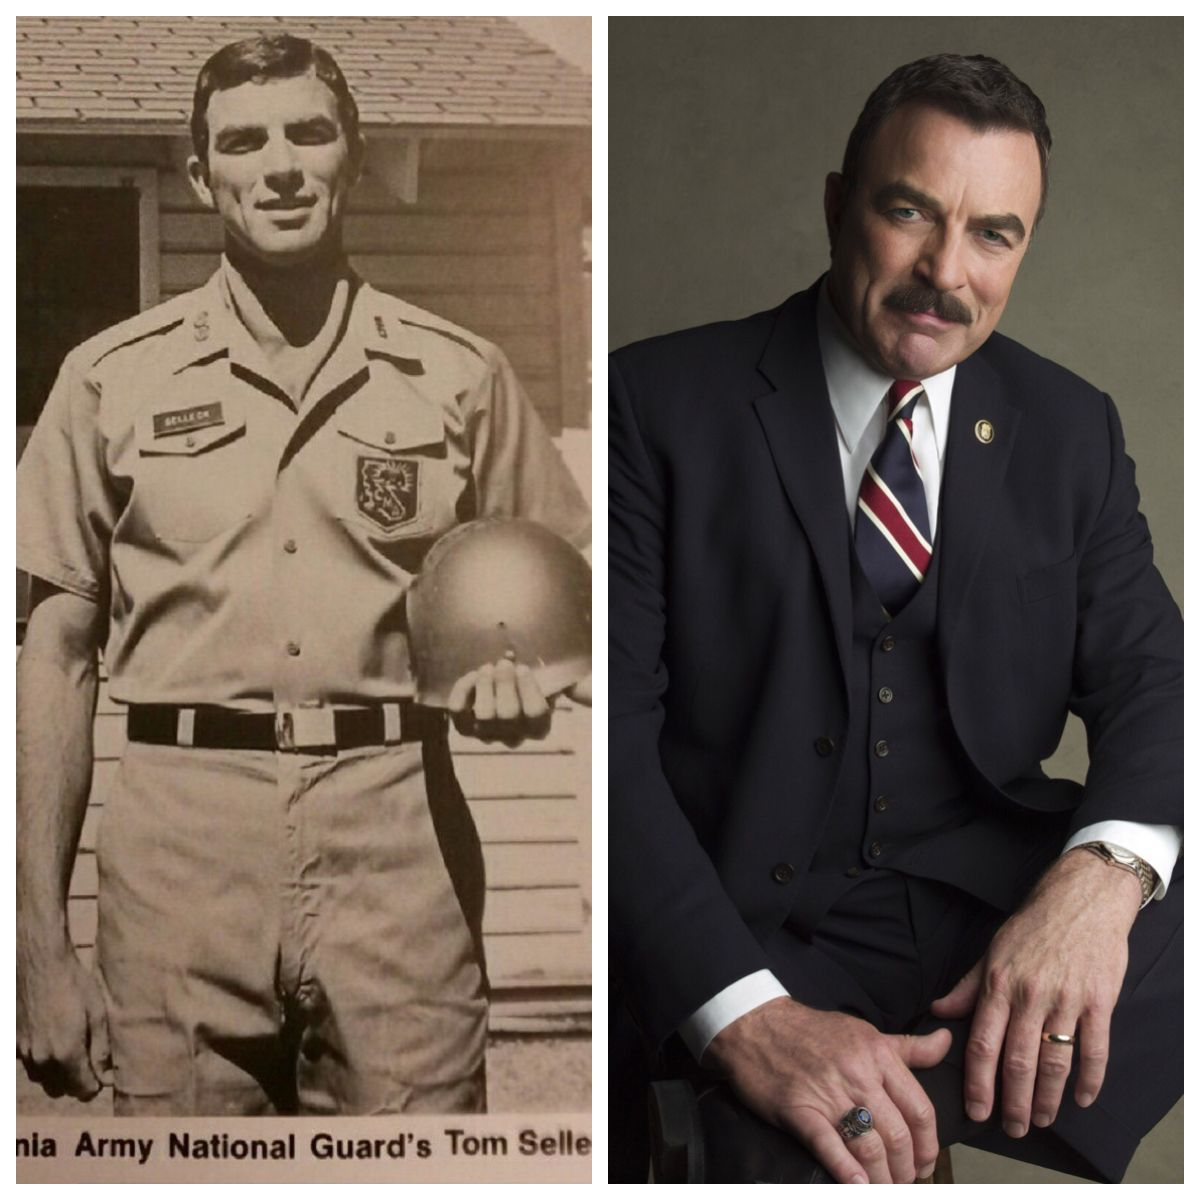 Tom kennedy us army claims service - Fan Tom Selleck United States Army Air Forces Best Known For His Private Investigator Role In Television Series Magnum P Tom Selleck Was Once Part Of The